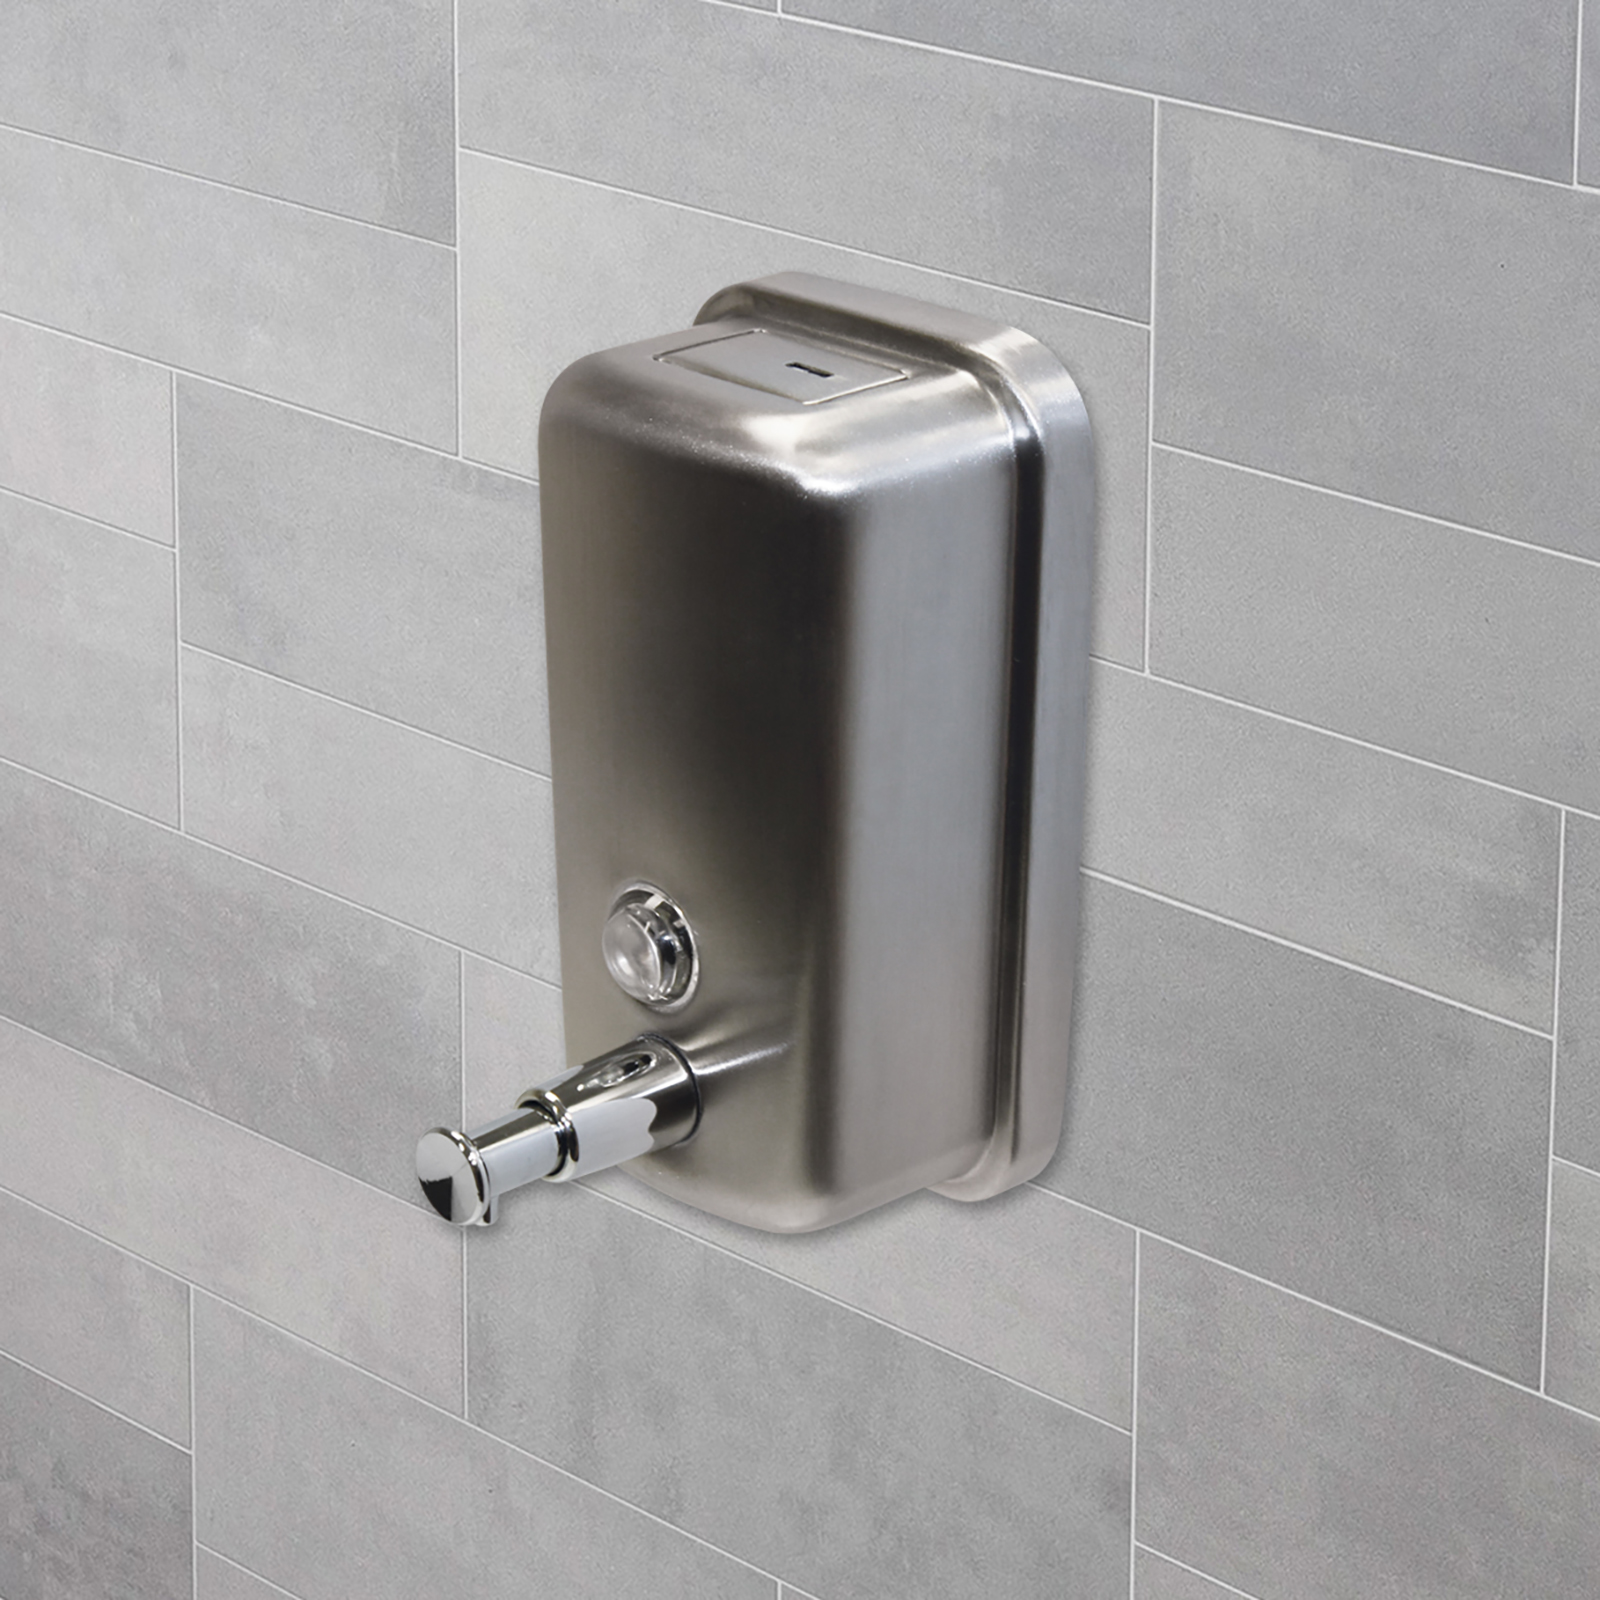 Restroom Soap Dispensers Bathroom Toilet Shower Soap Shampoo Dispenser Pump